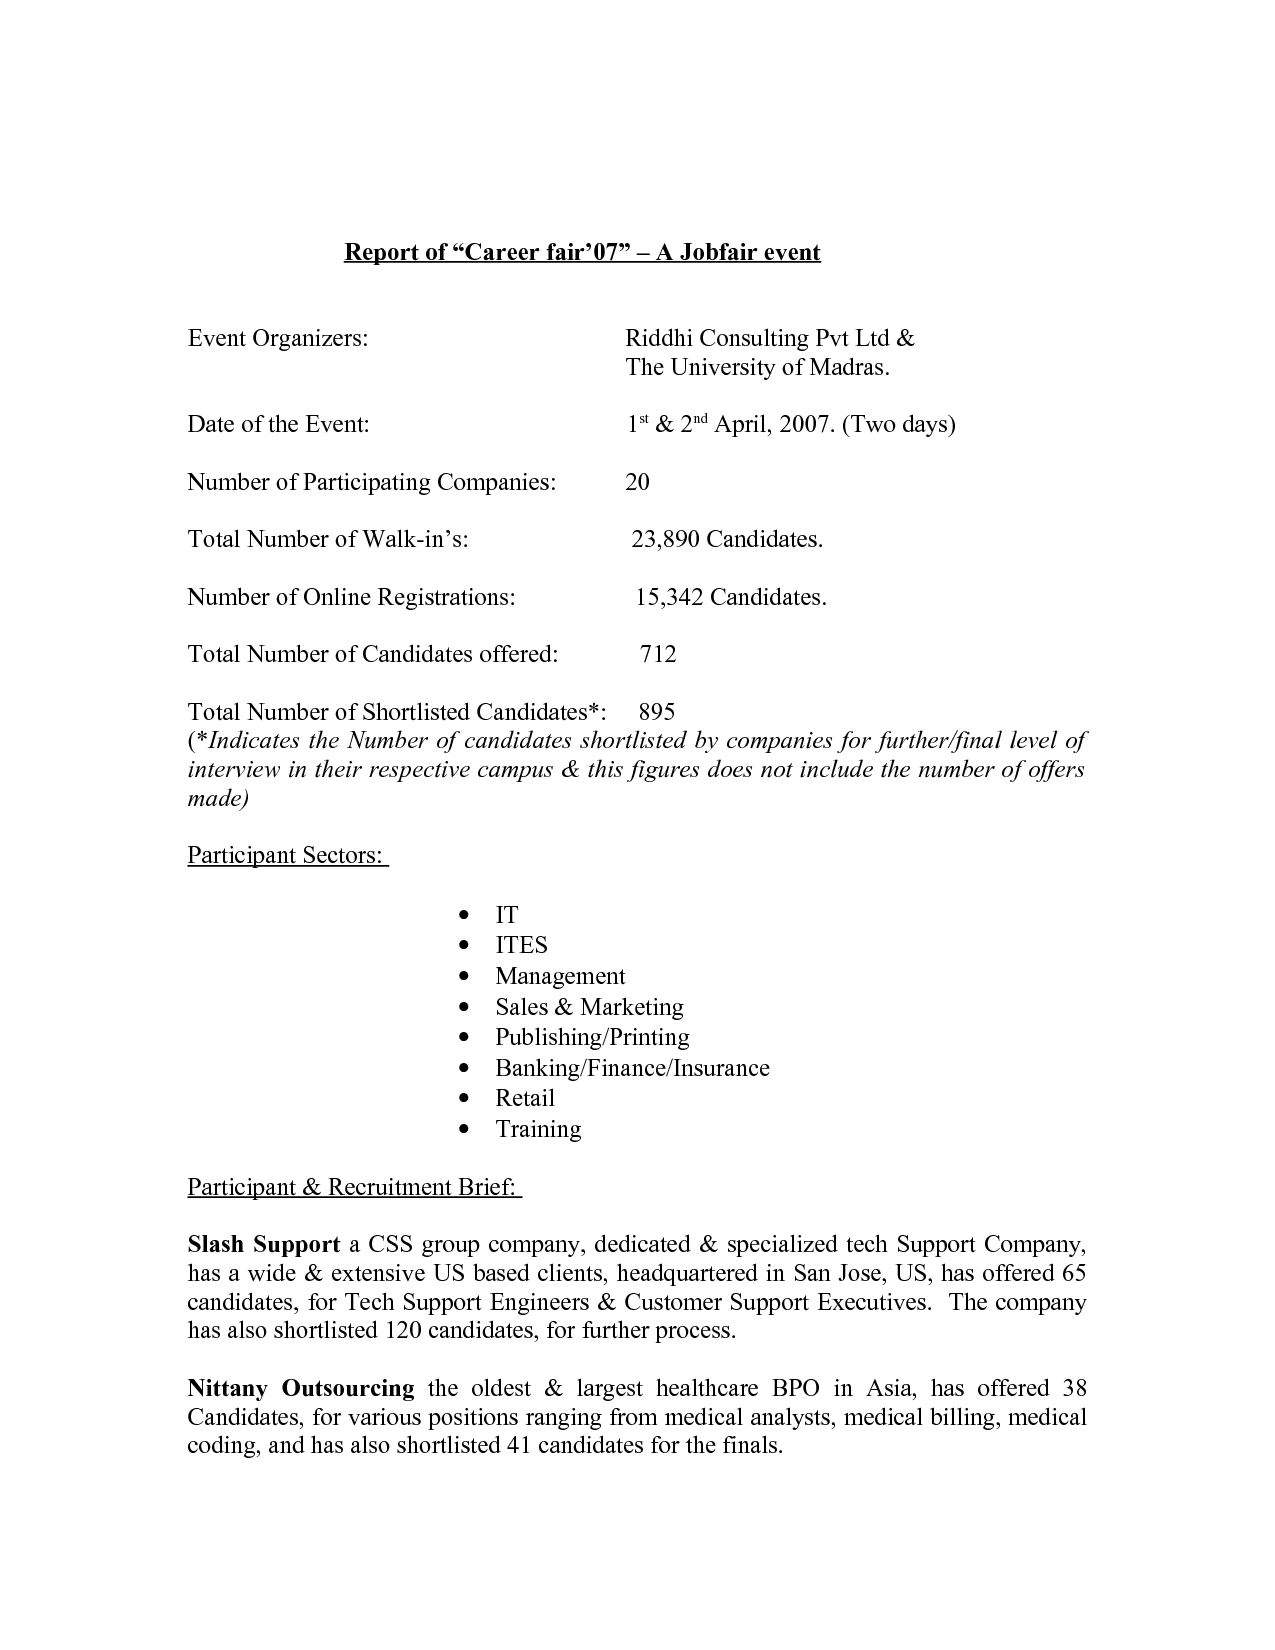 Resume Template In Word 2007 Resume Format For Freshers Free Download Resume Format For